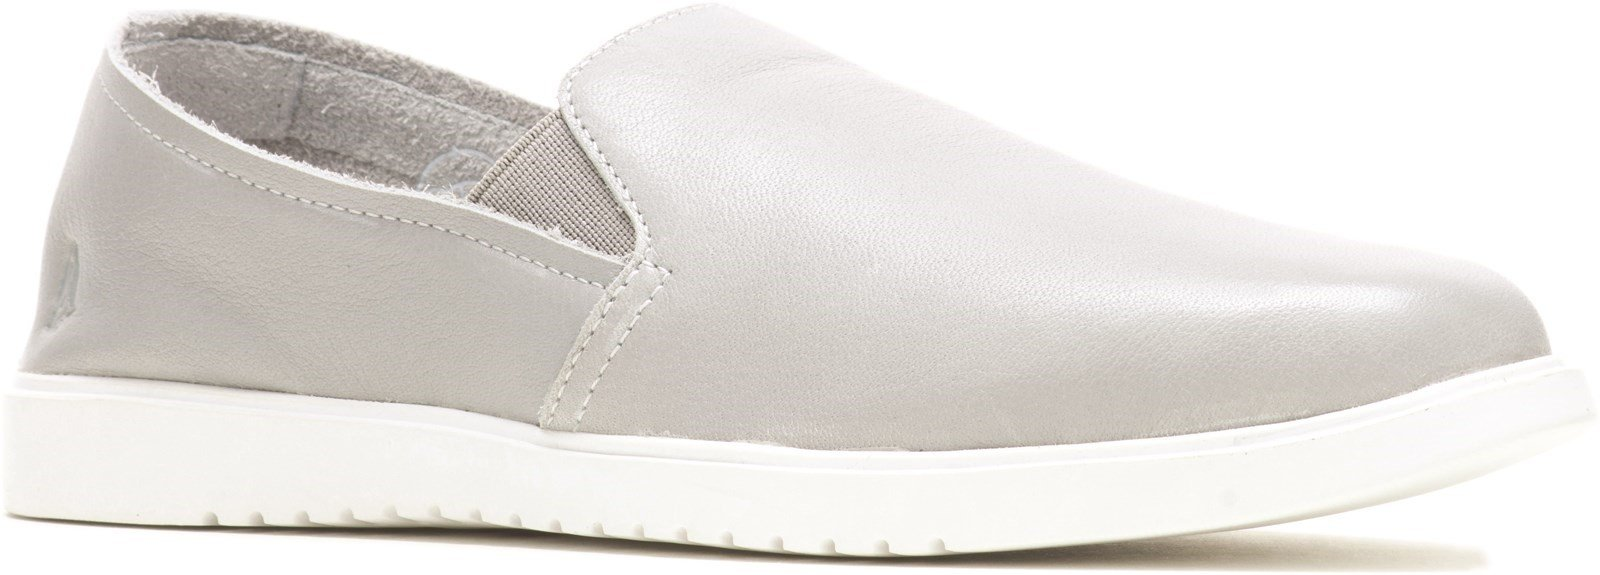 Hush Puppies Women's Everyday Trainer Various Colours 31944 - Grey 3